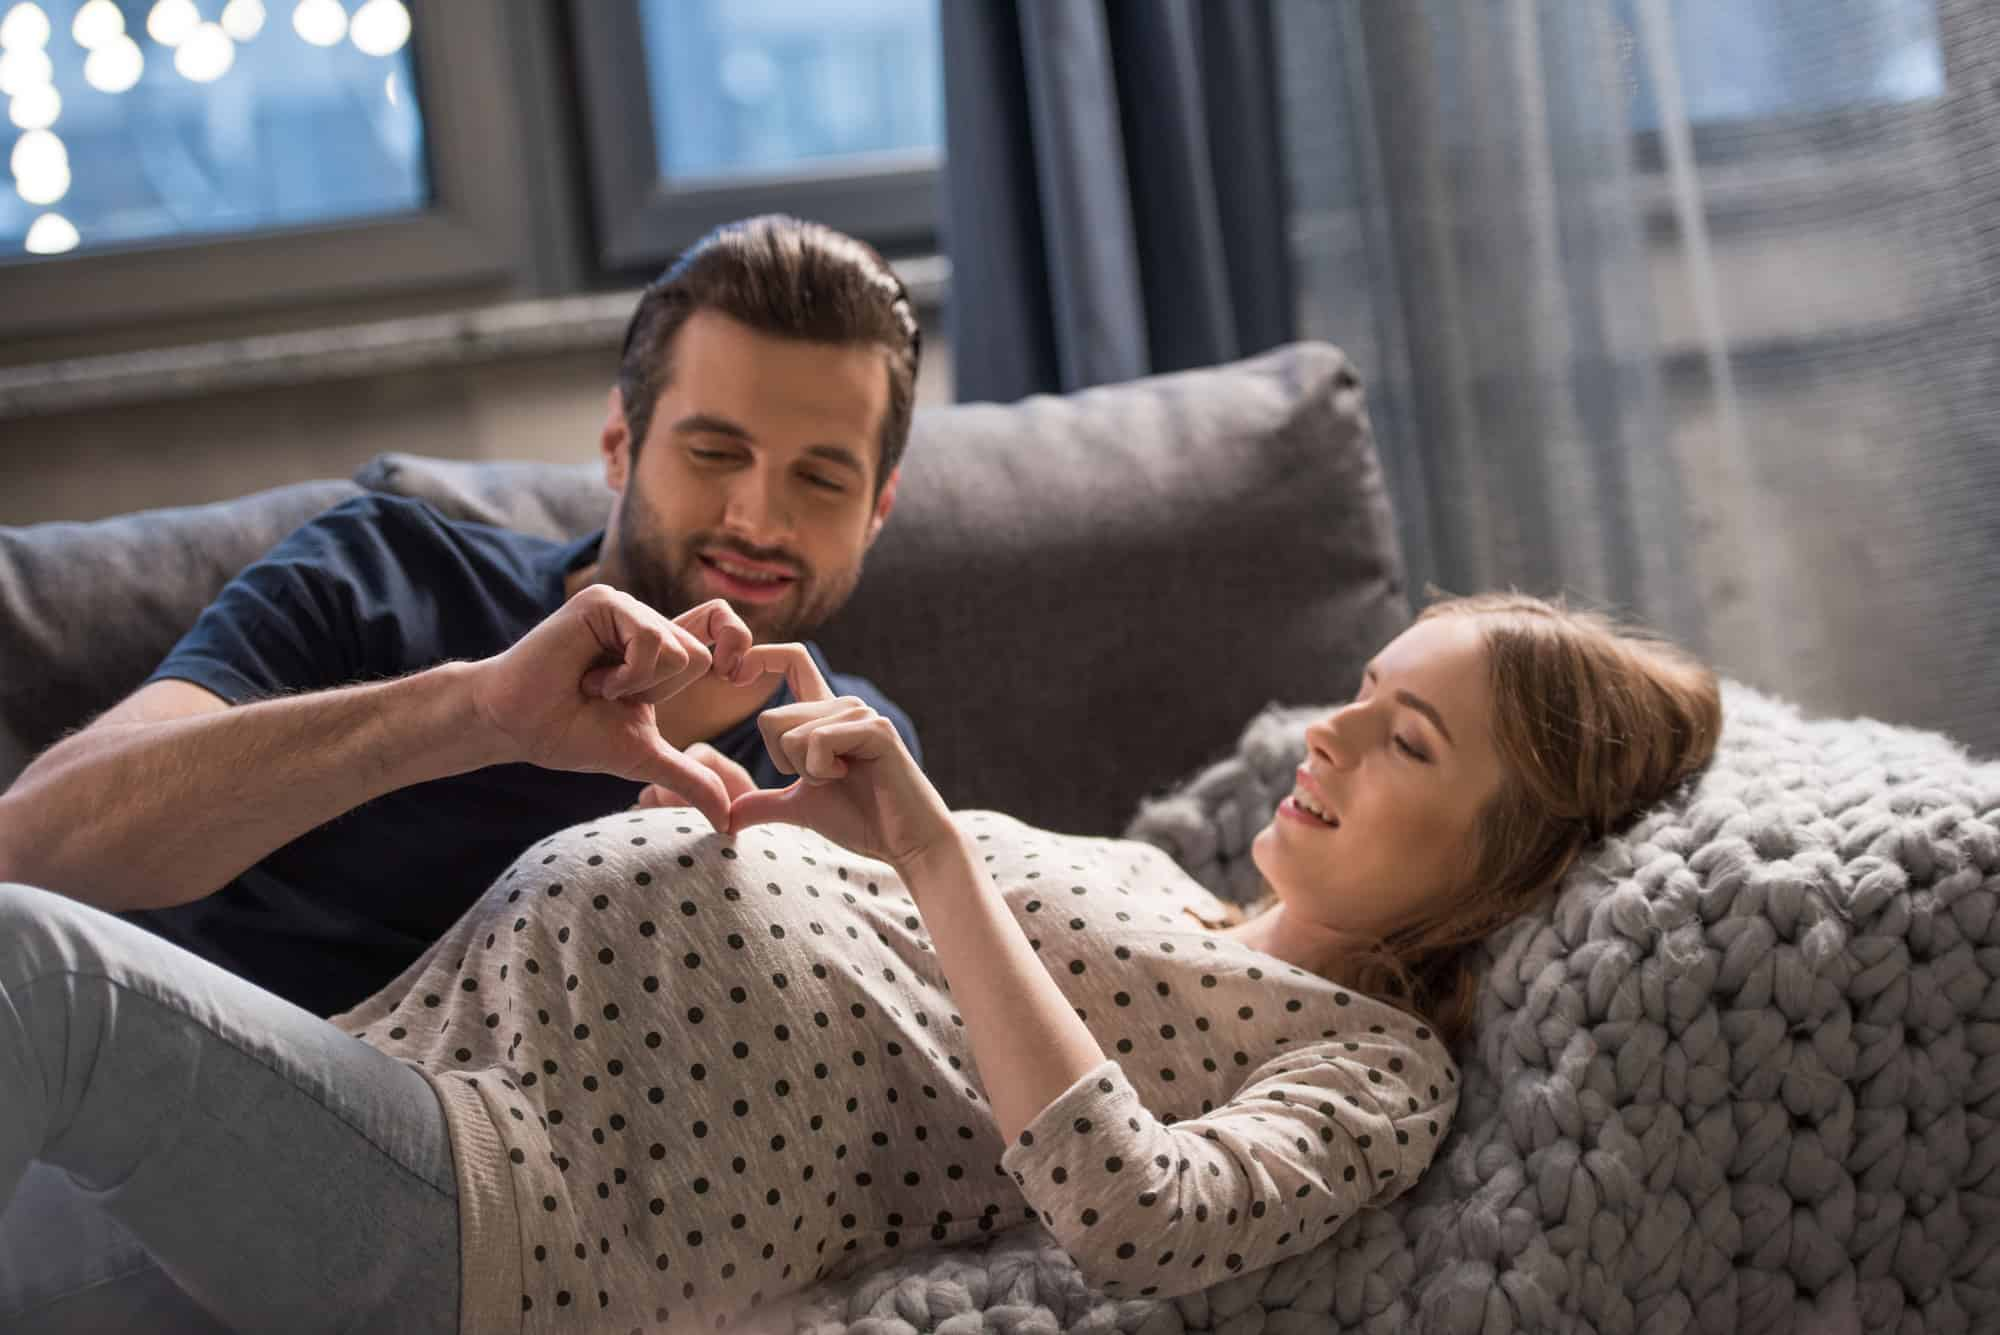 5+ Absolute Signs He Wants To Get You Pregnant - AskApril